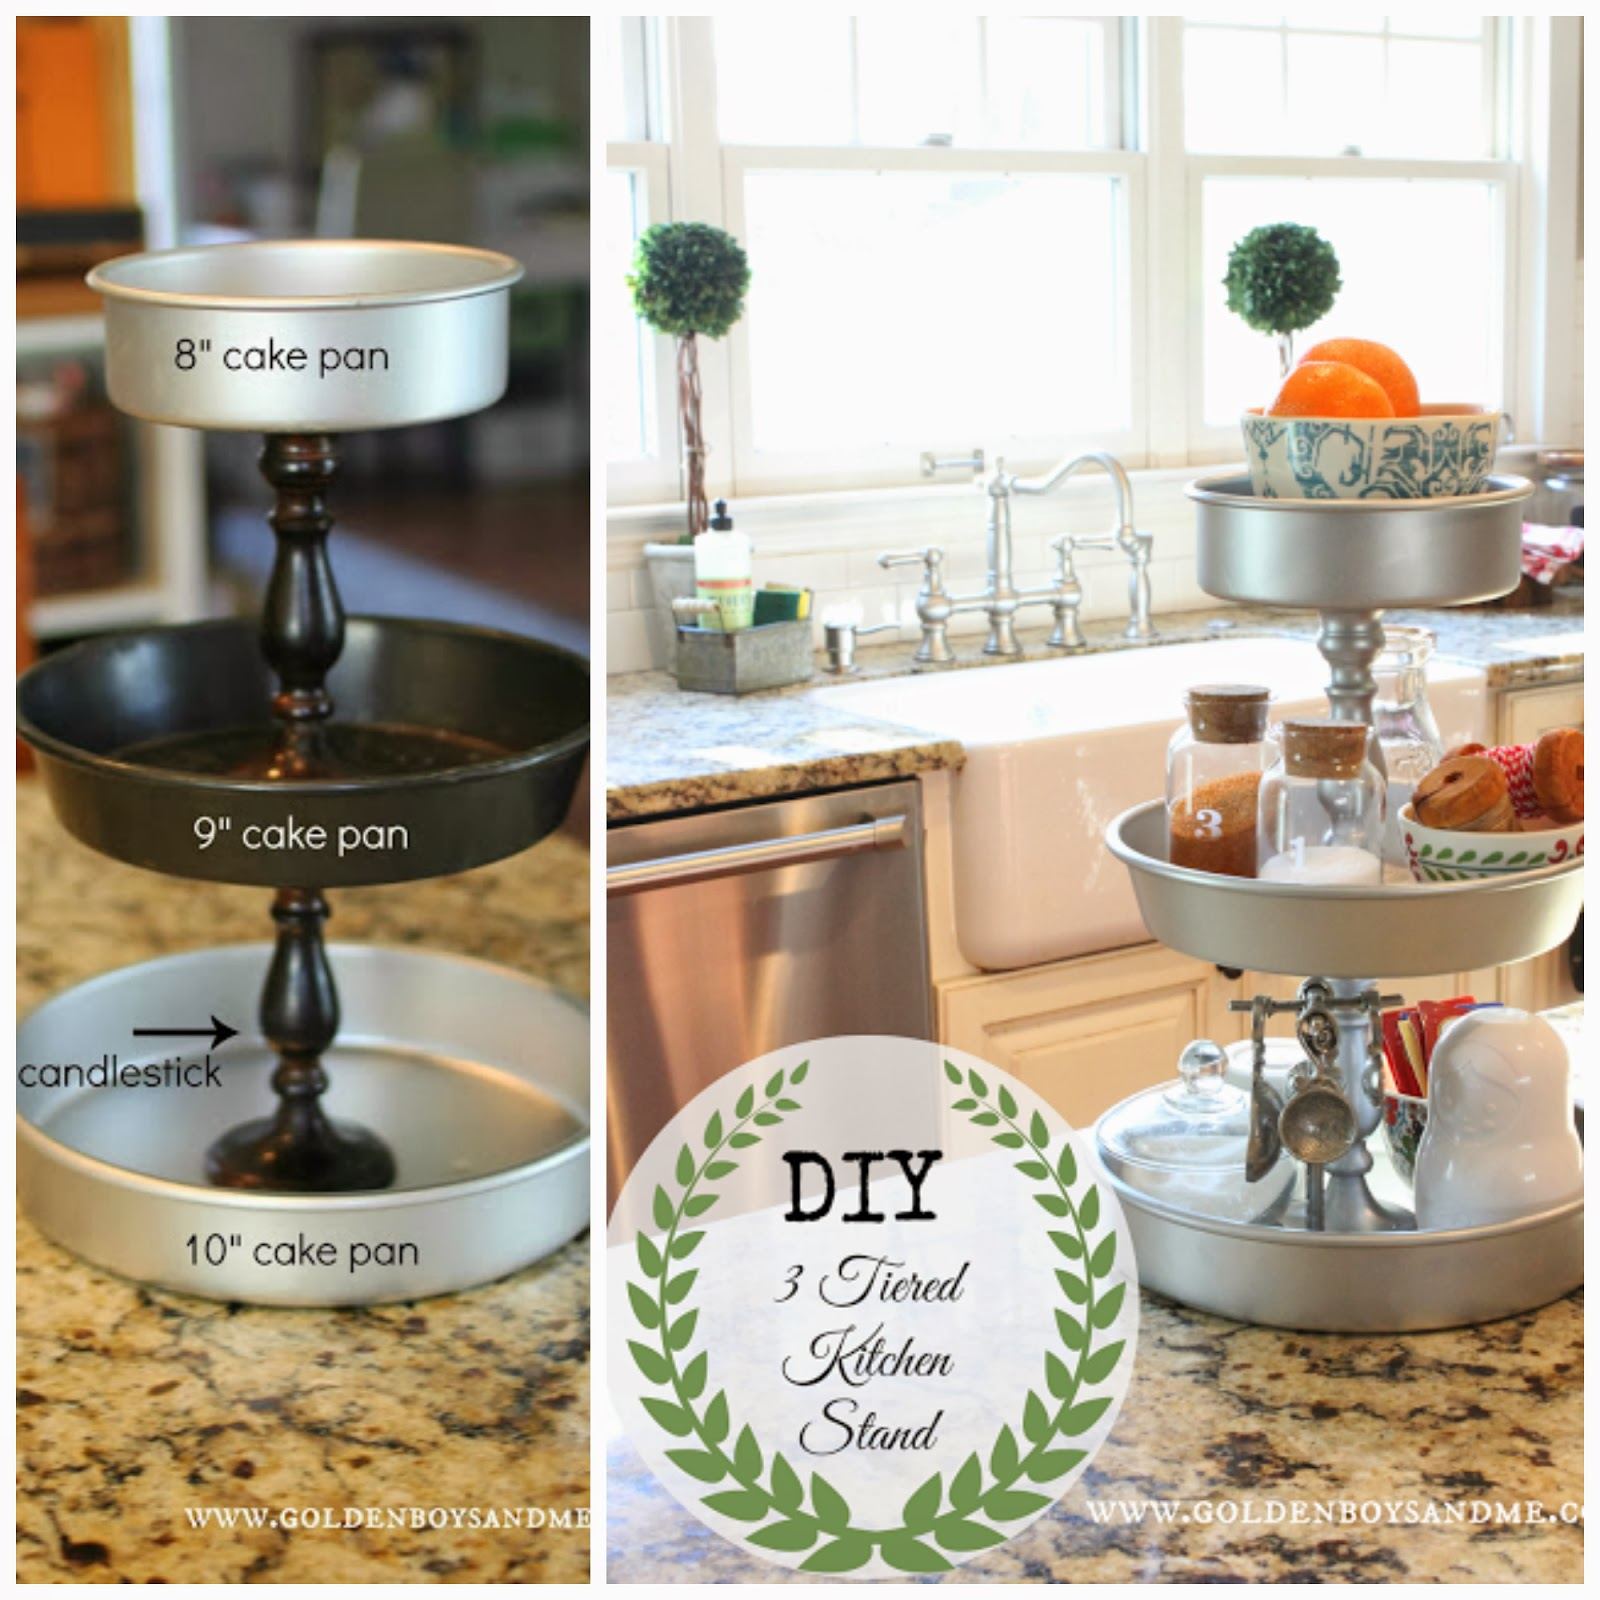 Diy 3 Tiered Kitchen Stand From Www Goldenboysandme